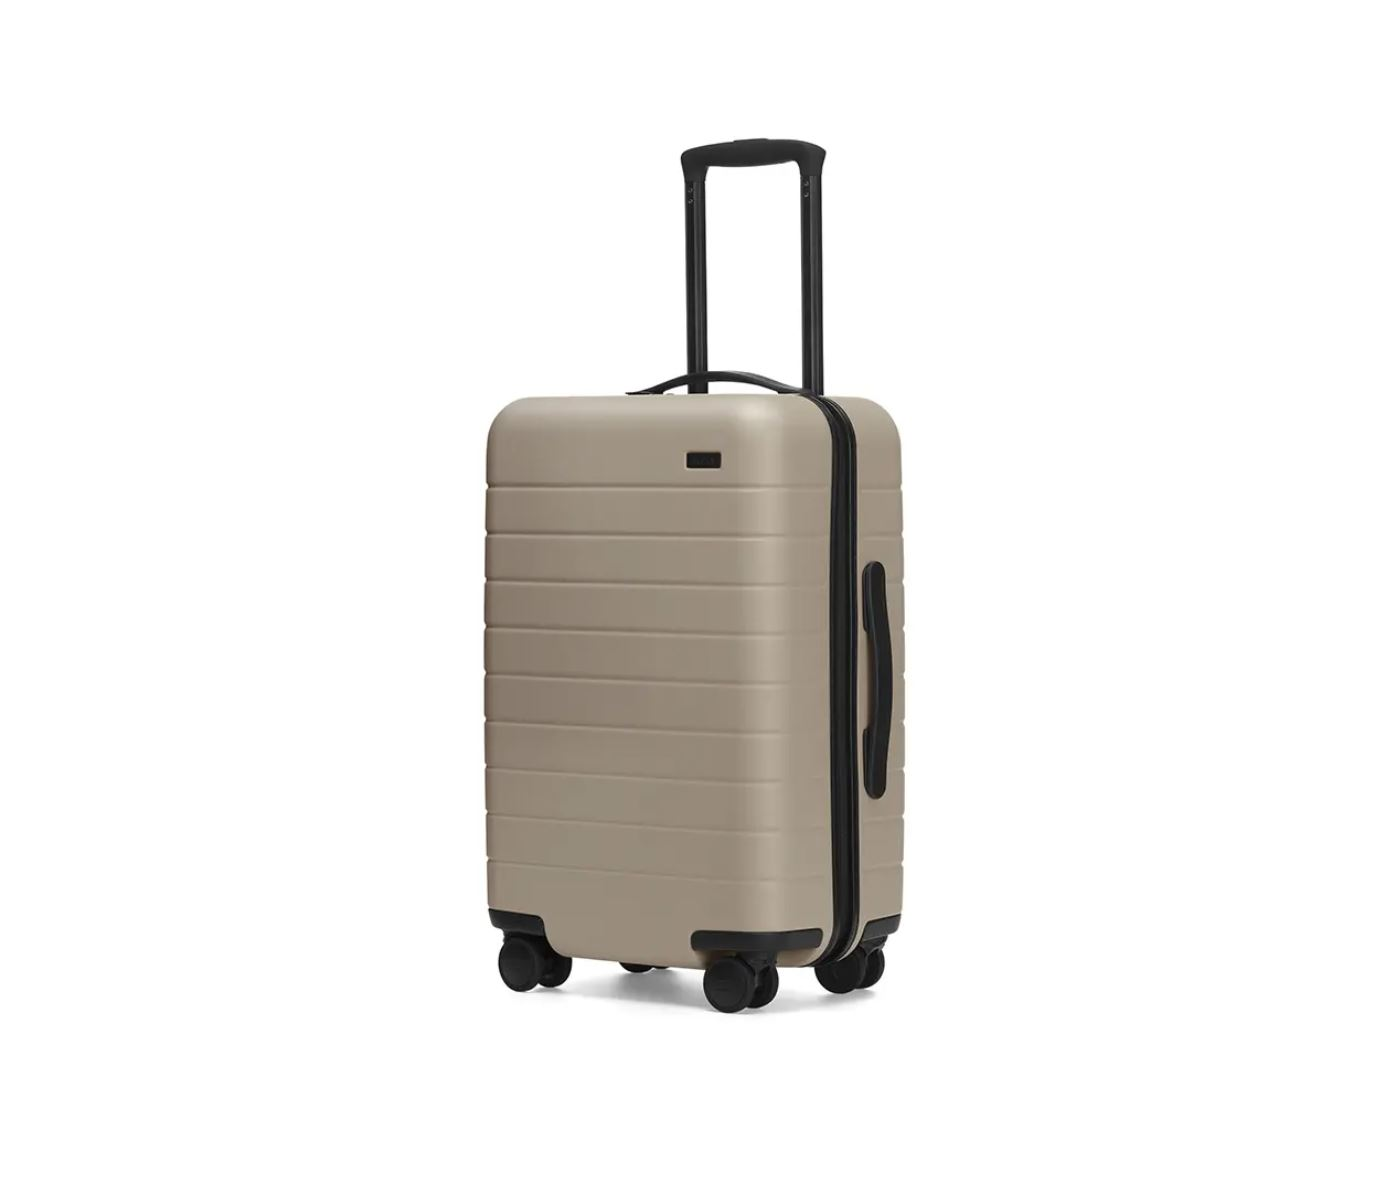 This hot seller for 2019 is great for men and women who travel often and are looking for the best-of-the-best in carry-on luggage. This model by AWAY is available in 10 finishes and boasts a removable rechargeable battery cube that will charge your phone or tablet quickly. It also has some great compartments inside to make packing a bit more elegant and clothes-friendly.  (AWAY: $225)